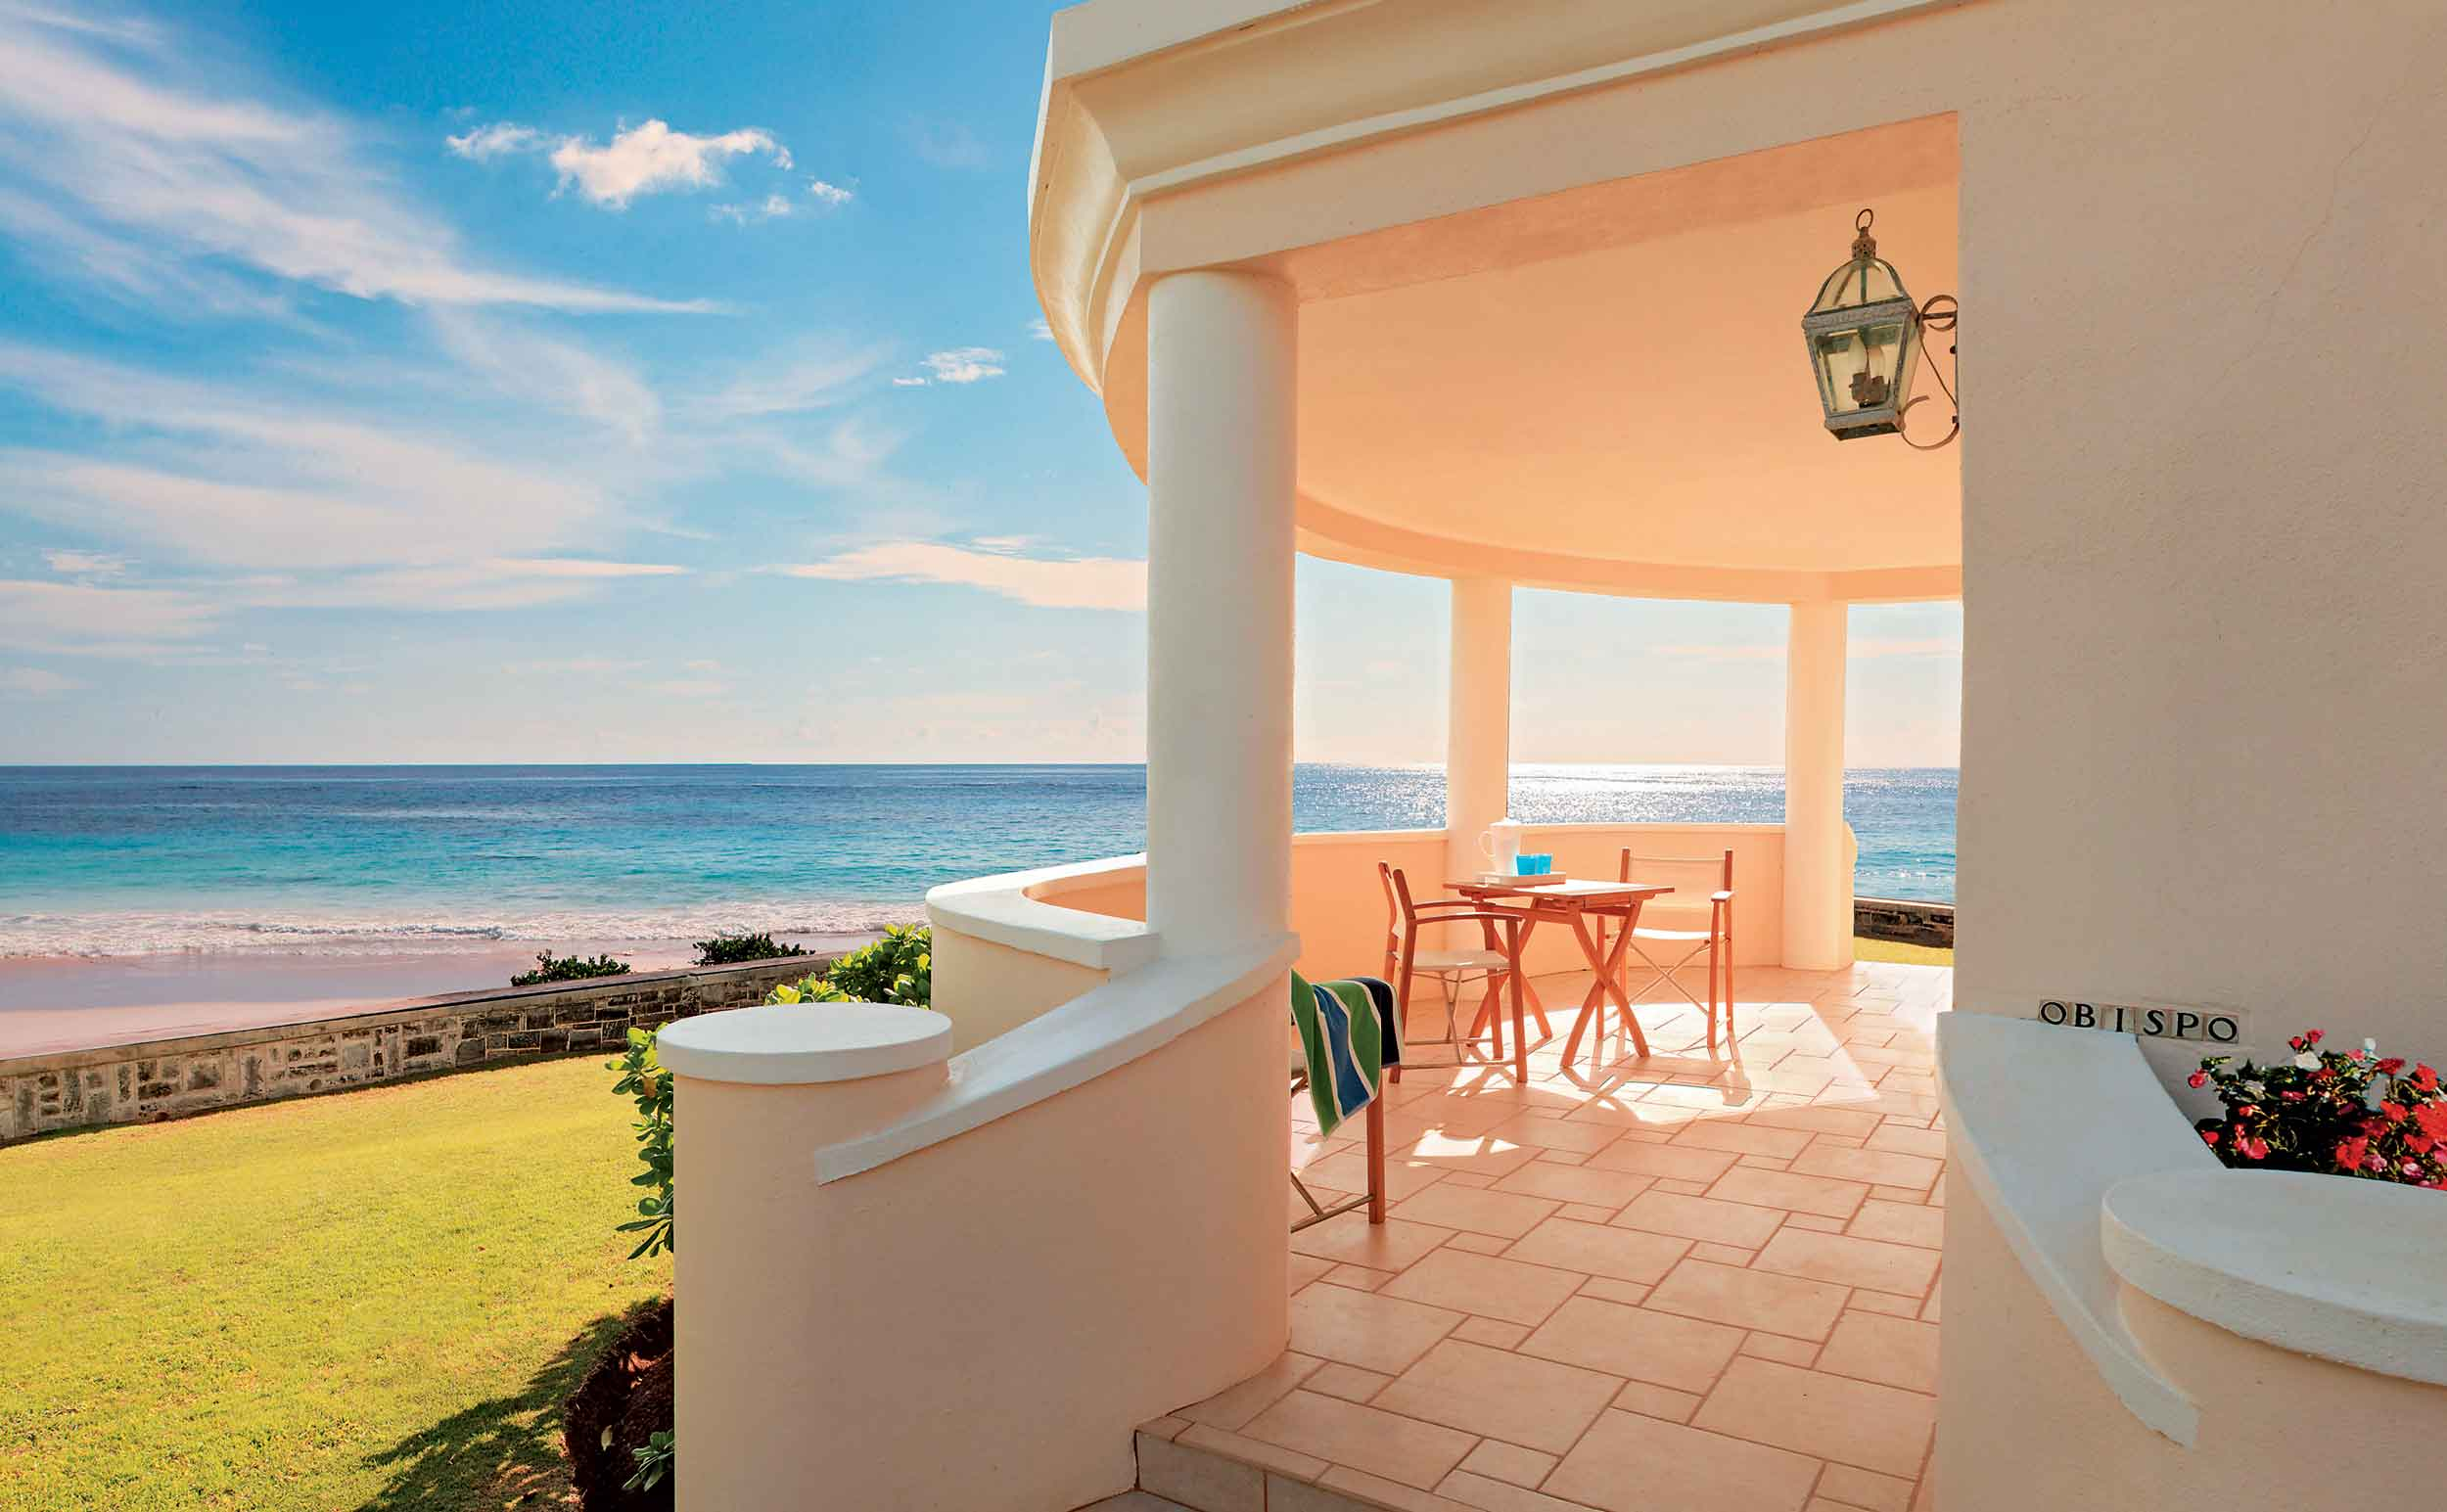 The main residence and glorious 14-acre grounds are complemented by a host of unique dwellings; a little pavilion known as Obispo overlooks the pink sands and turquoise waters of Grape Bay.